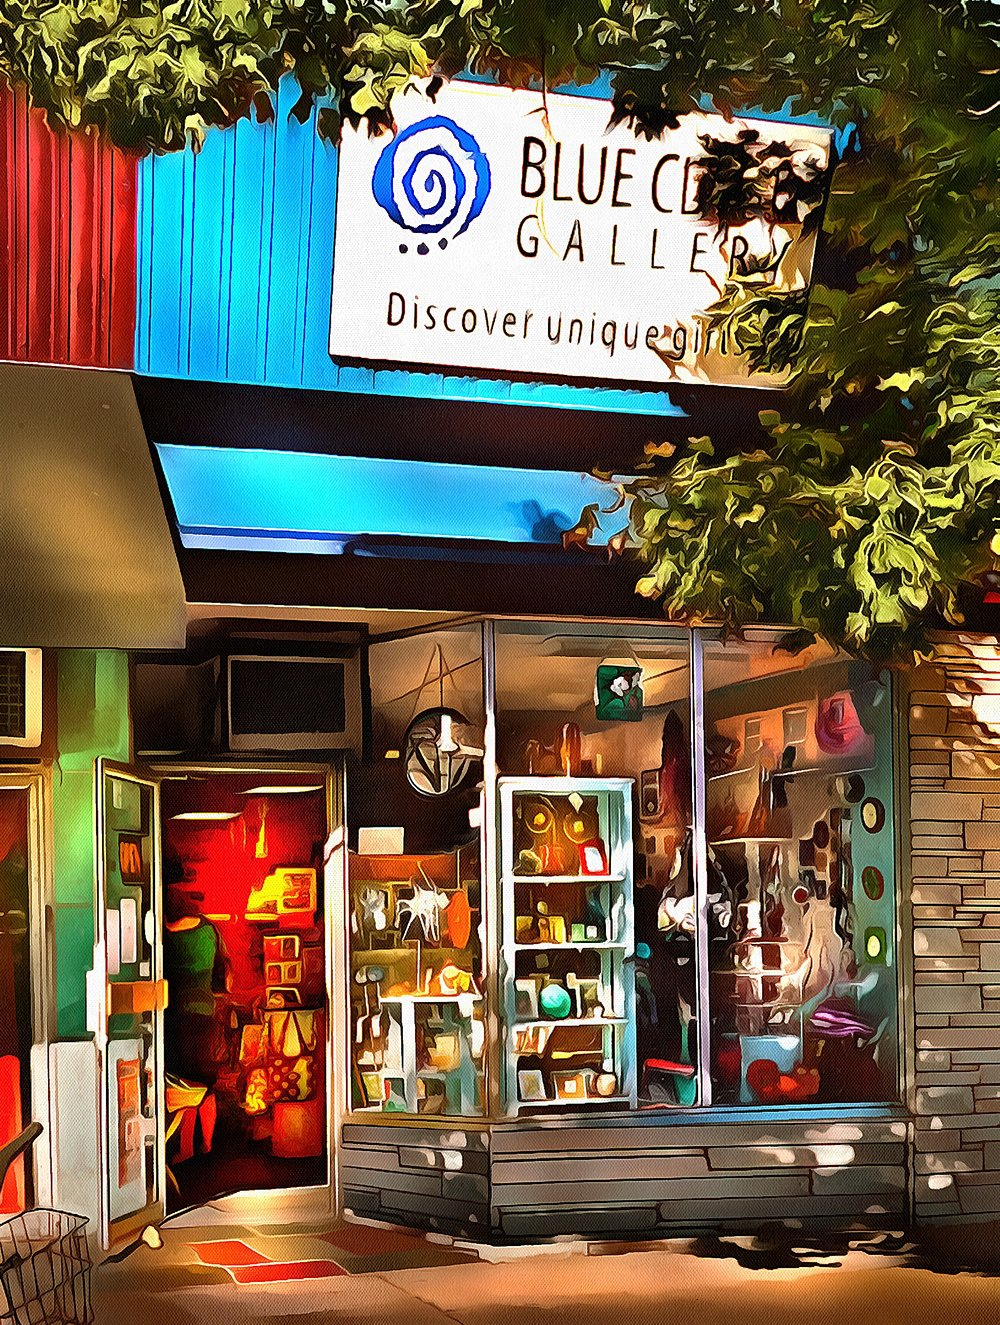 blue cloud gallery store front 3_DAP_Re-Acrylic.jpg